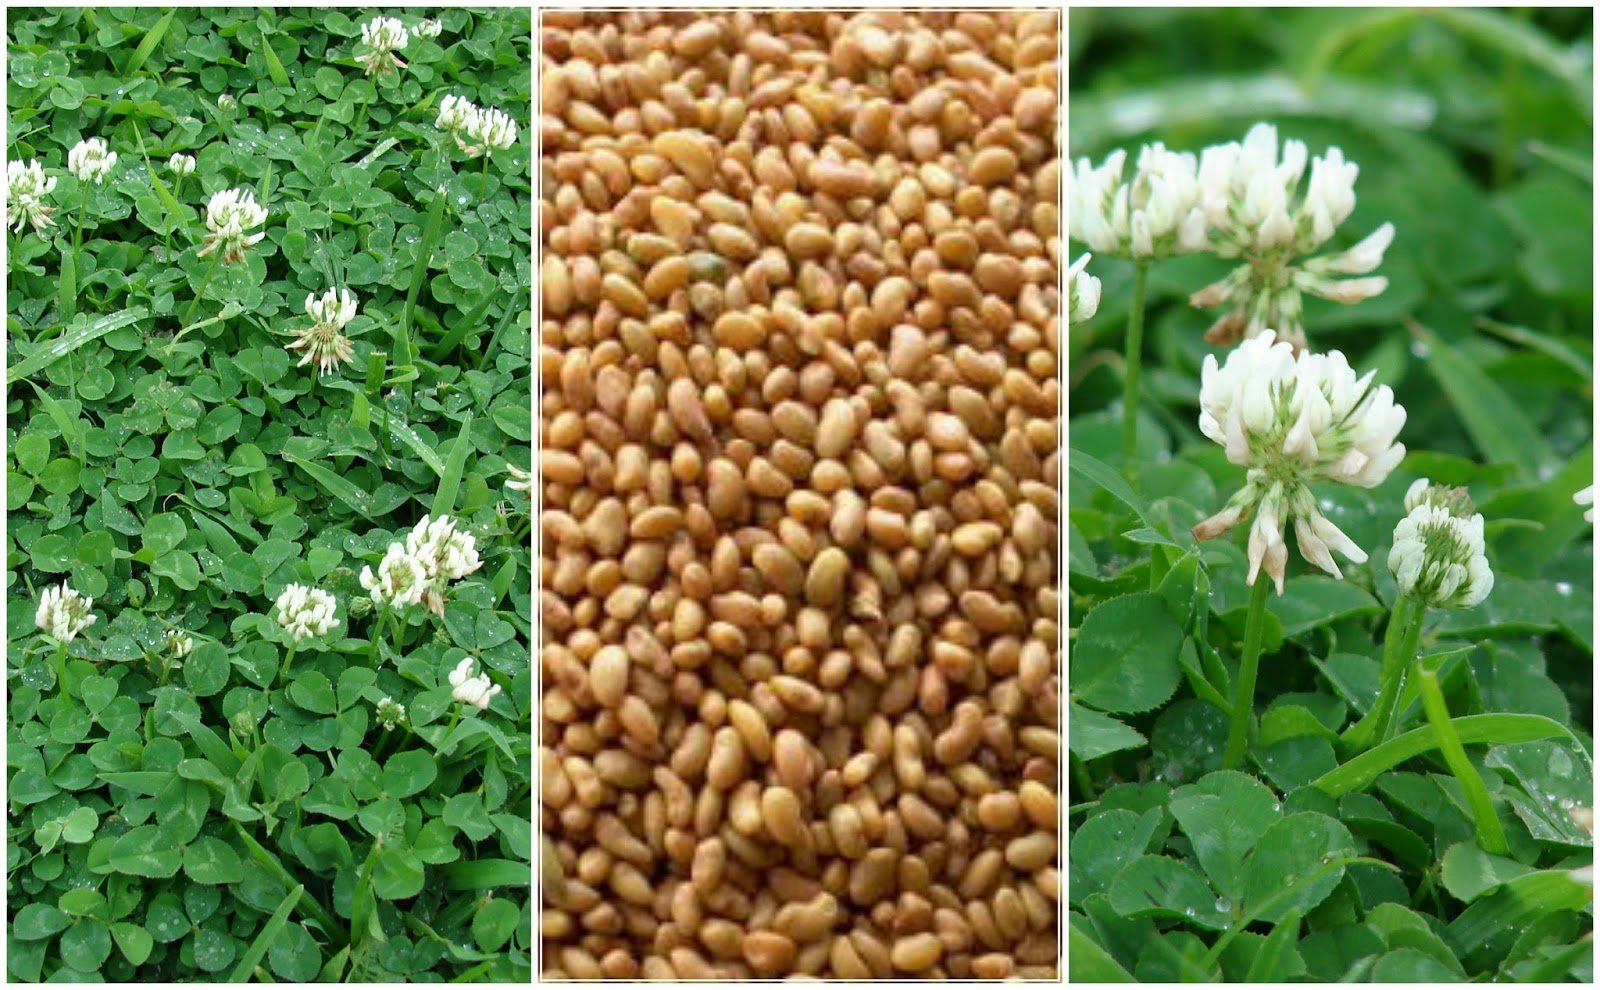 Plants for Pathways - Trifolium repens - White Clover.